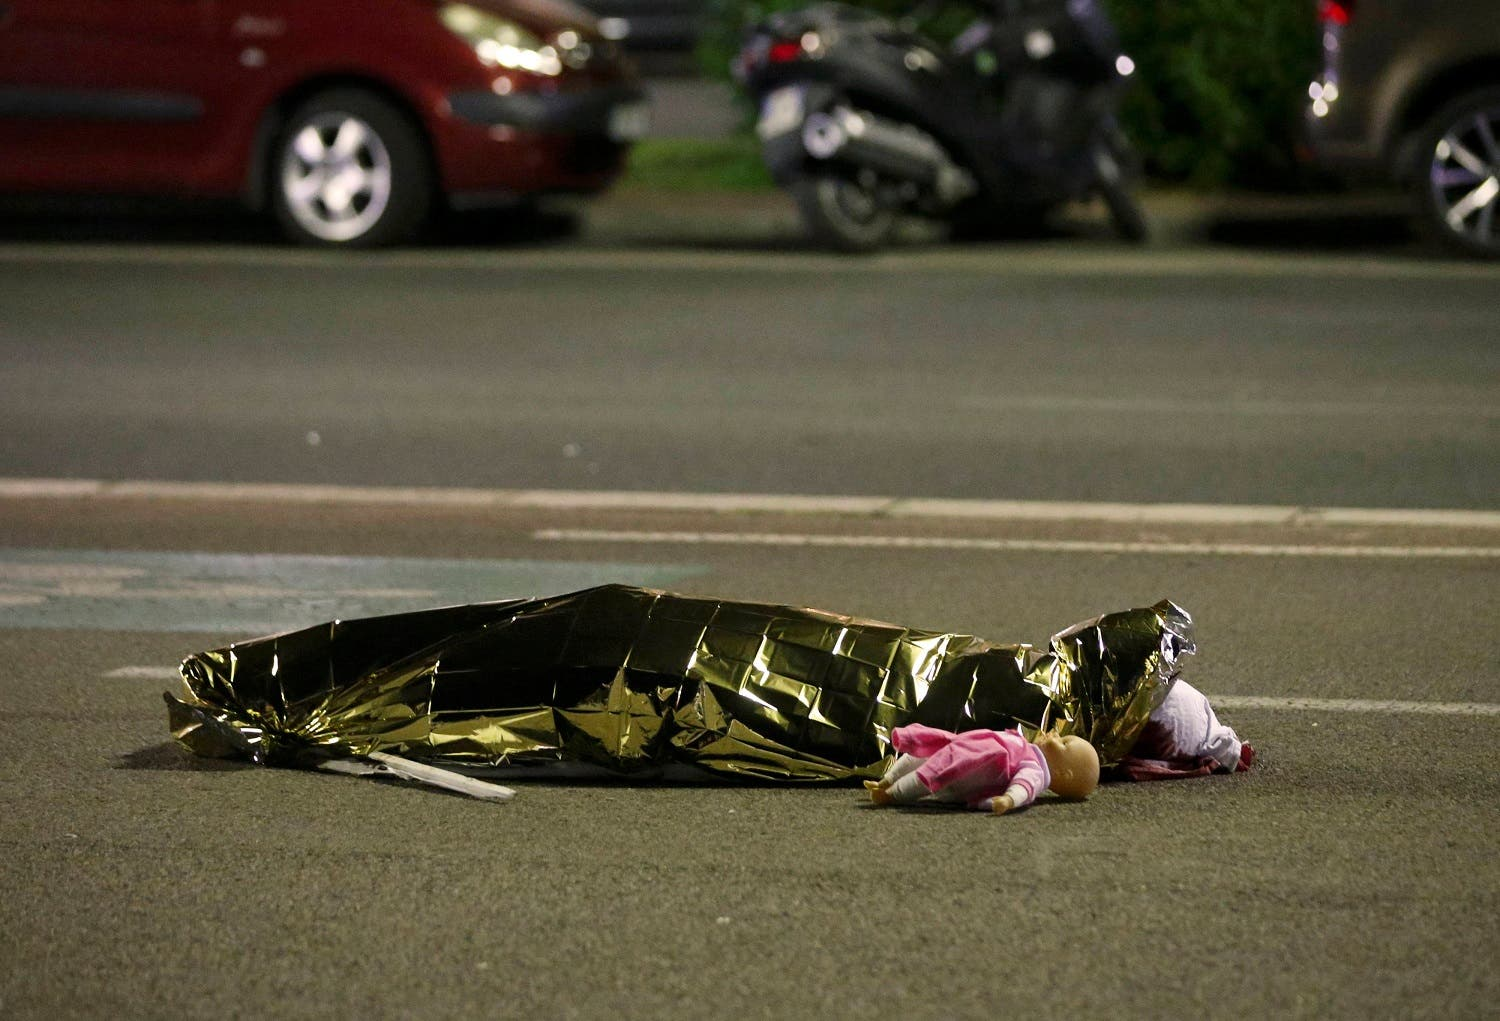 A body is seen on the ground after at least 30 people were killed in the southern French town of Nice when a truck ran into a crowd celebrating the Bastille Day national holiday. (Reuters)